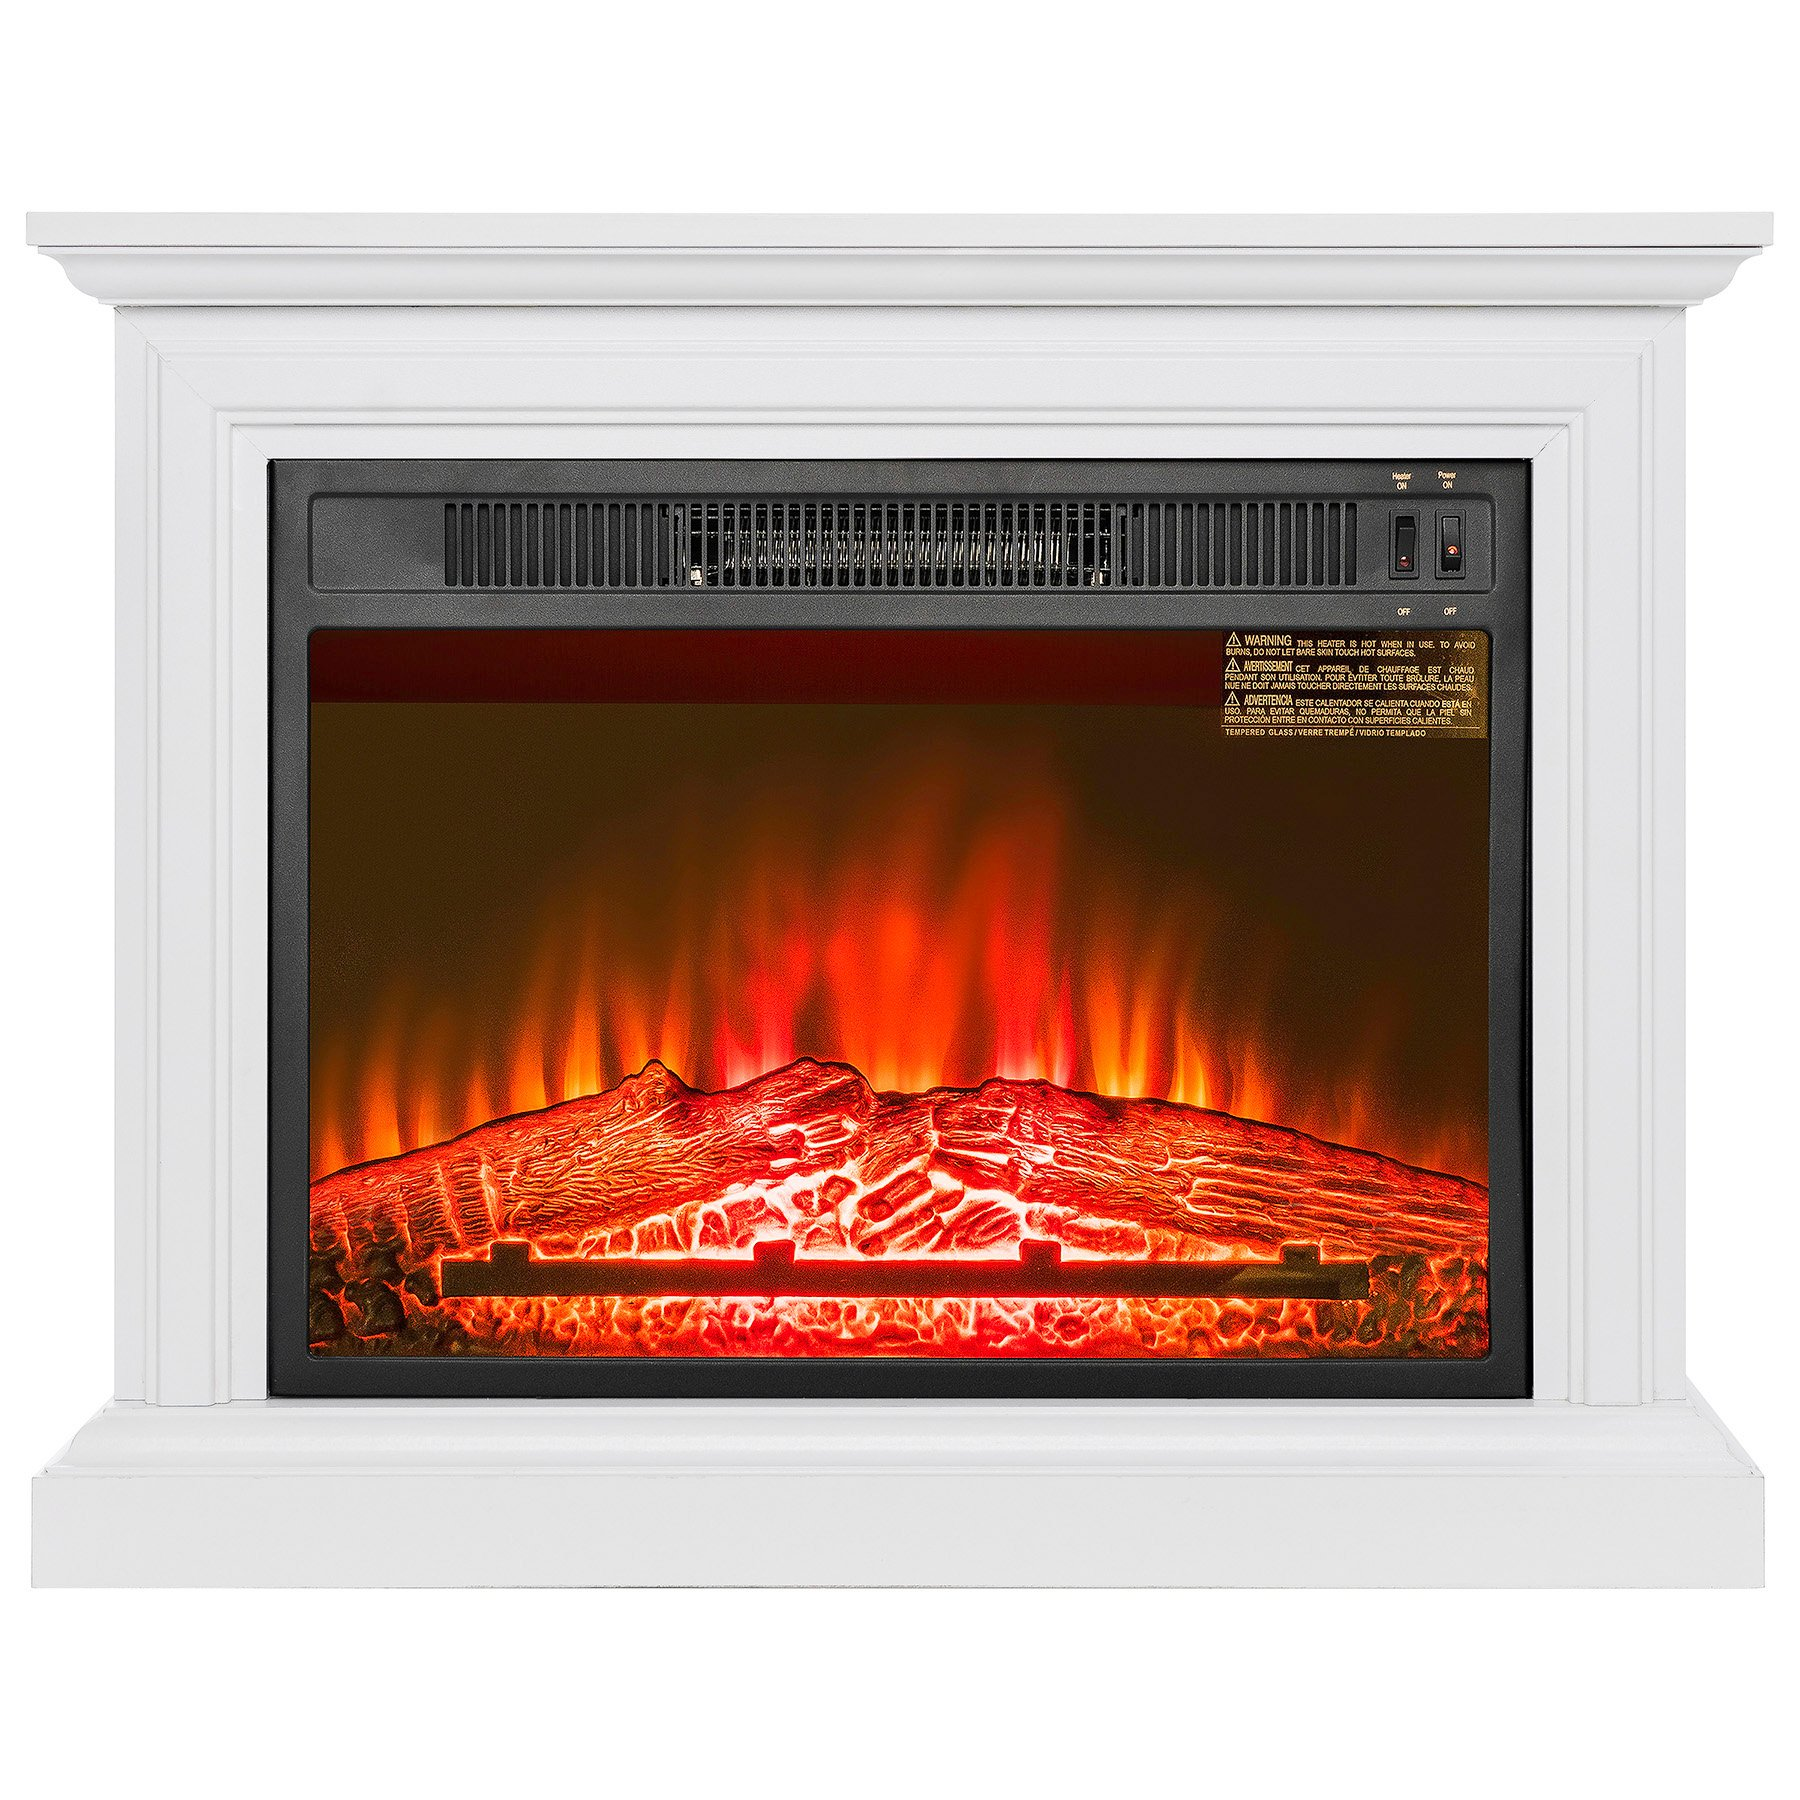 FIREBIRD 31'' White Wooden Finish Push Button Freestanding Insert Electric Fireplace Stove Heater